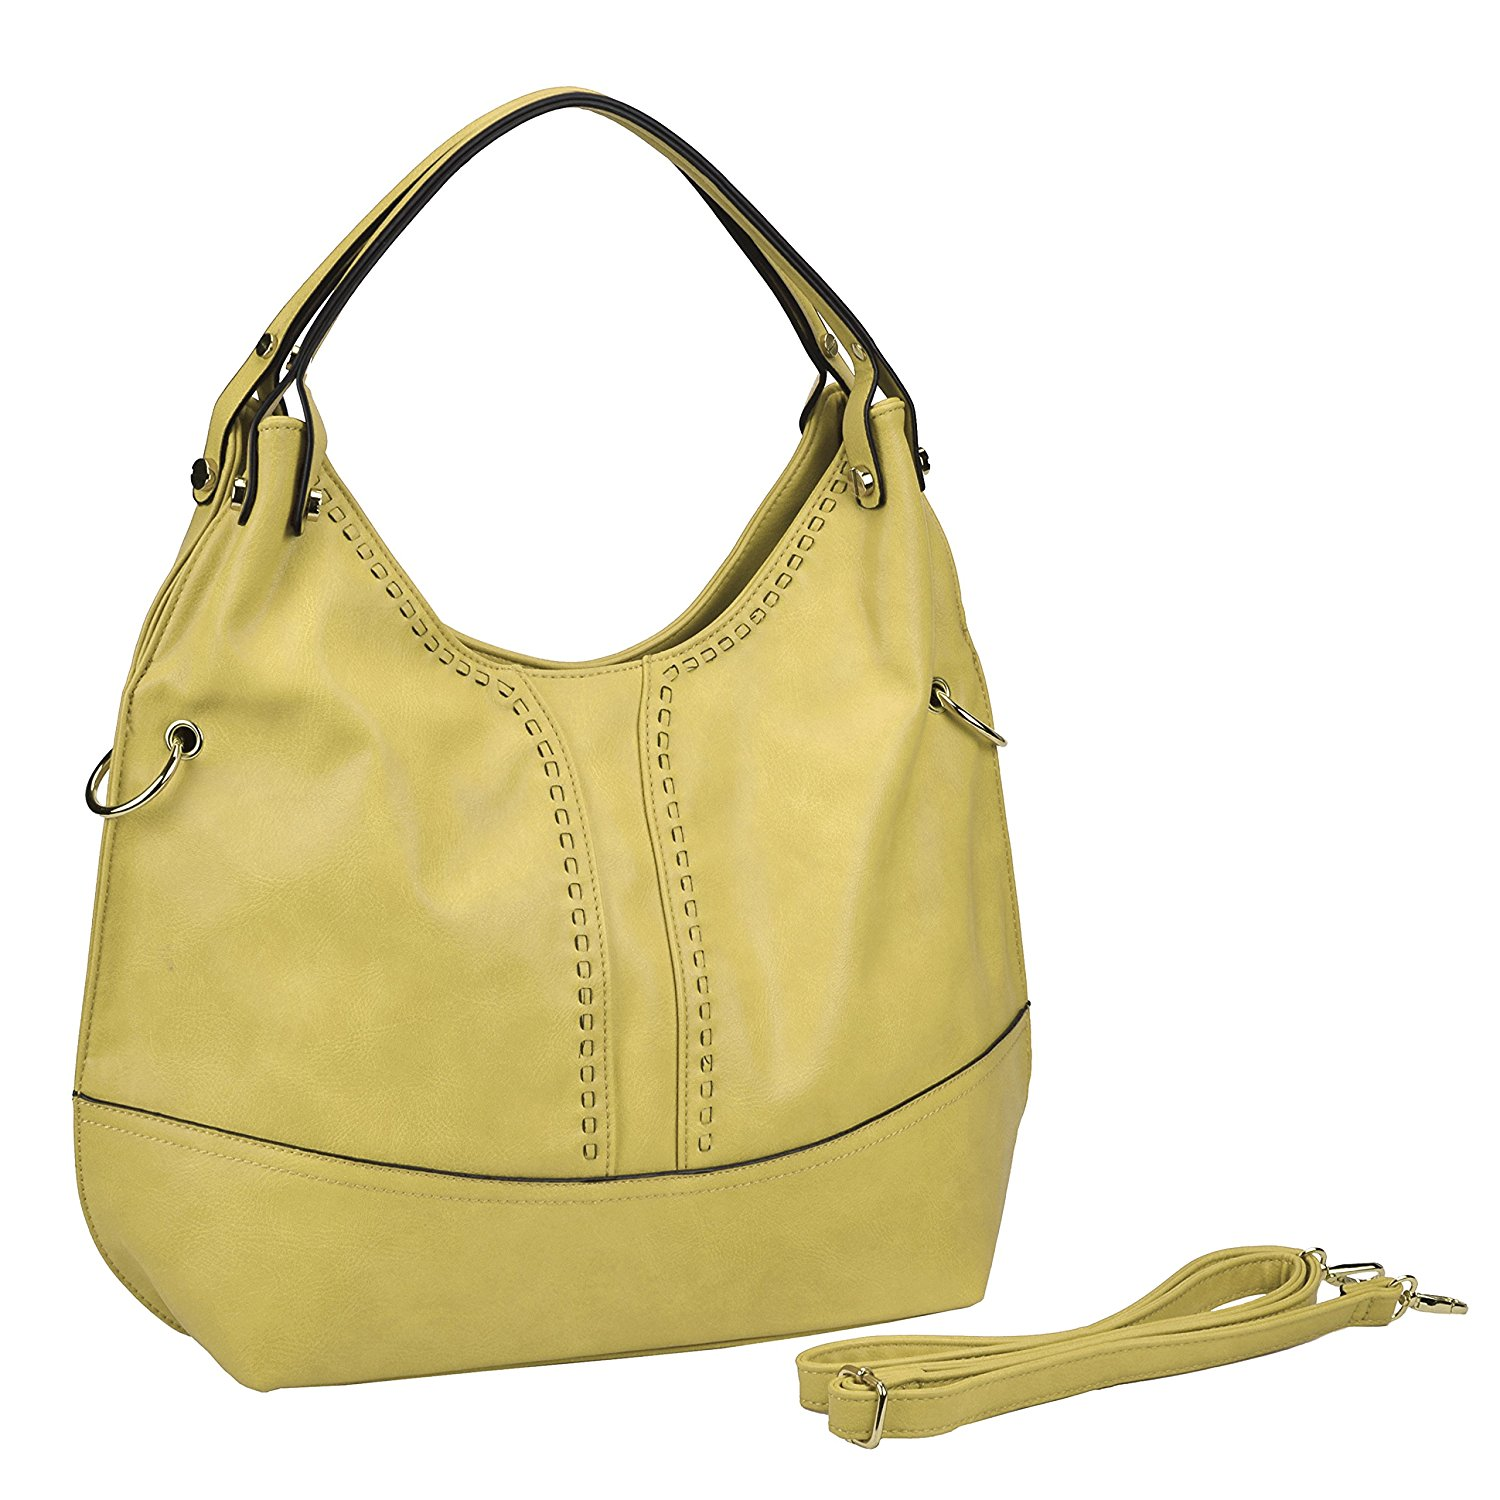 a2b5fe47f1 Get Quotations · MG Collection Double Top Handle Large Slouchy Hobo Purse  Crossbody Handbag